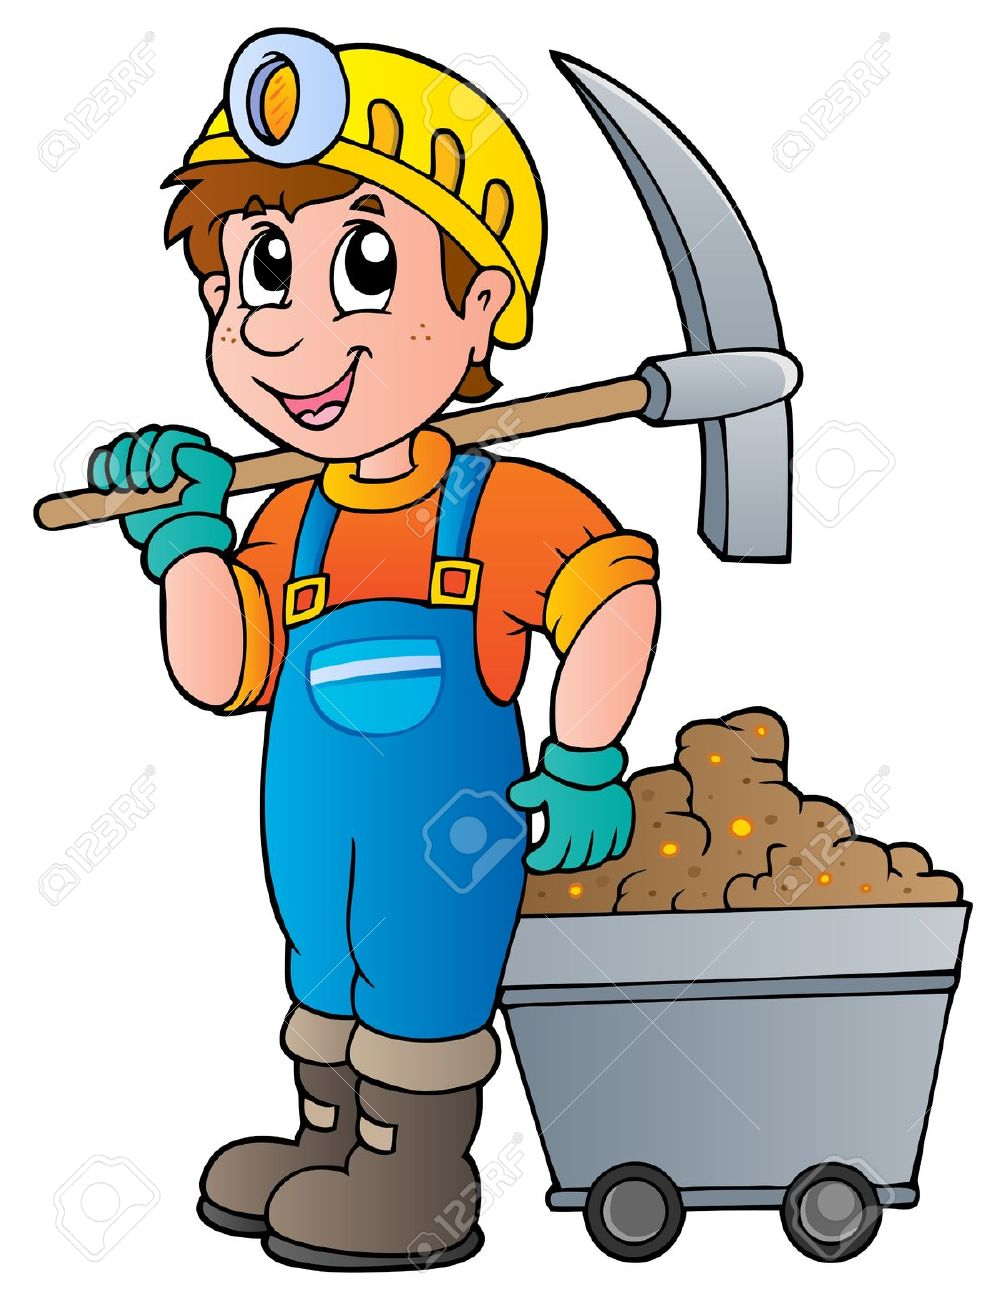 Mining engineer clipart.